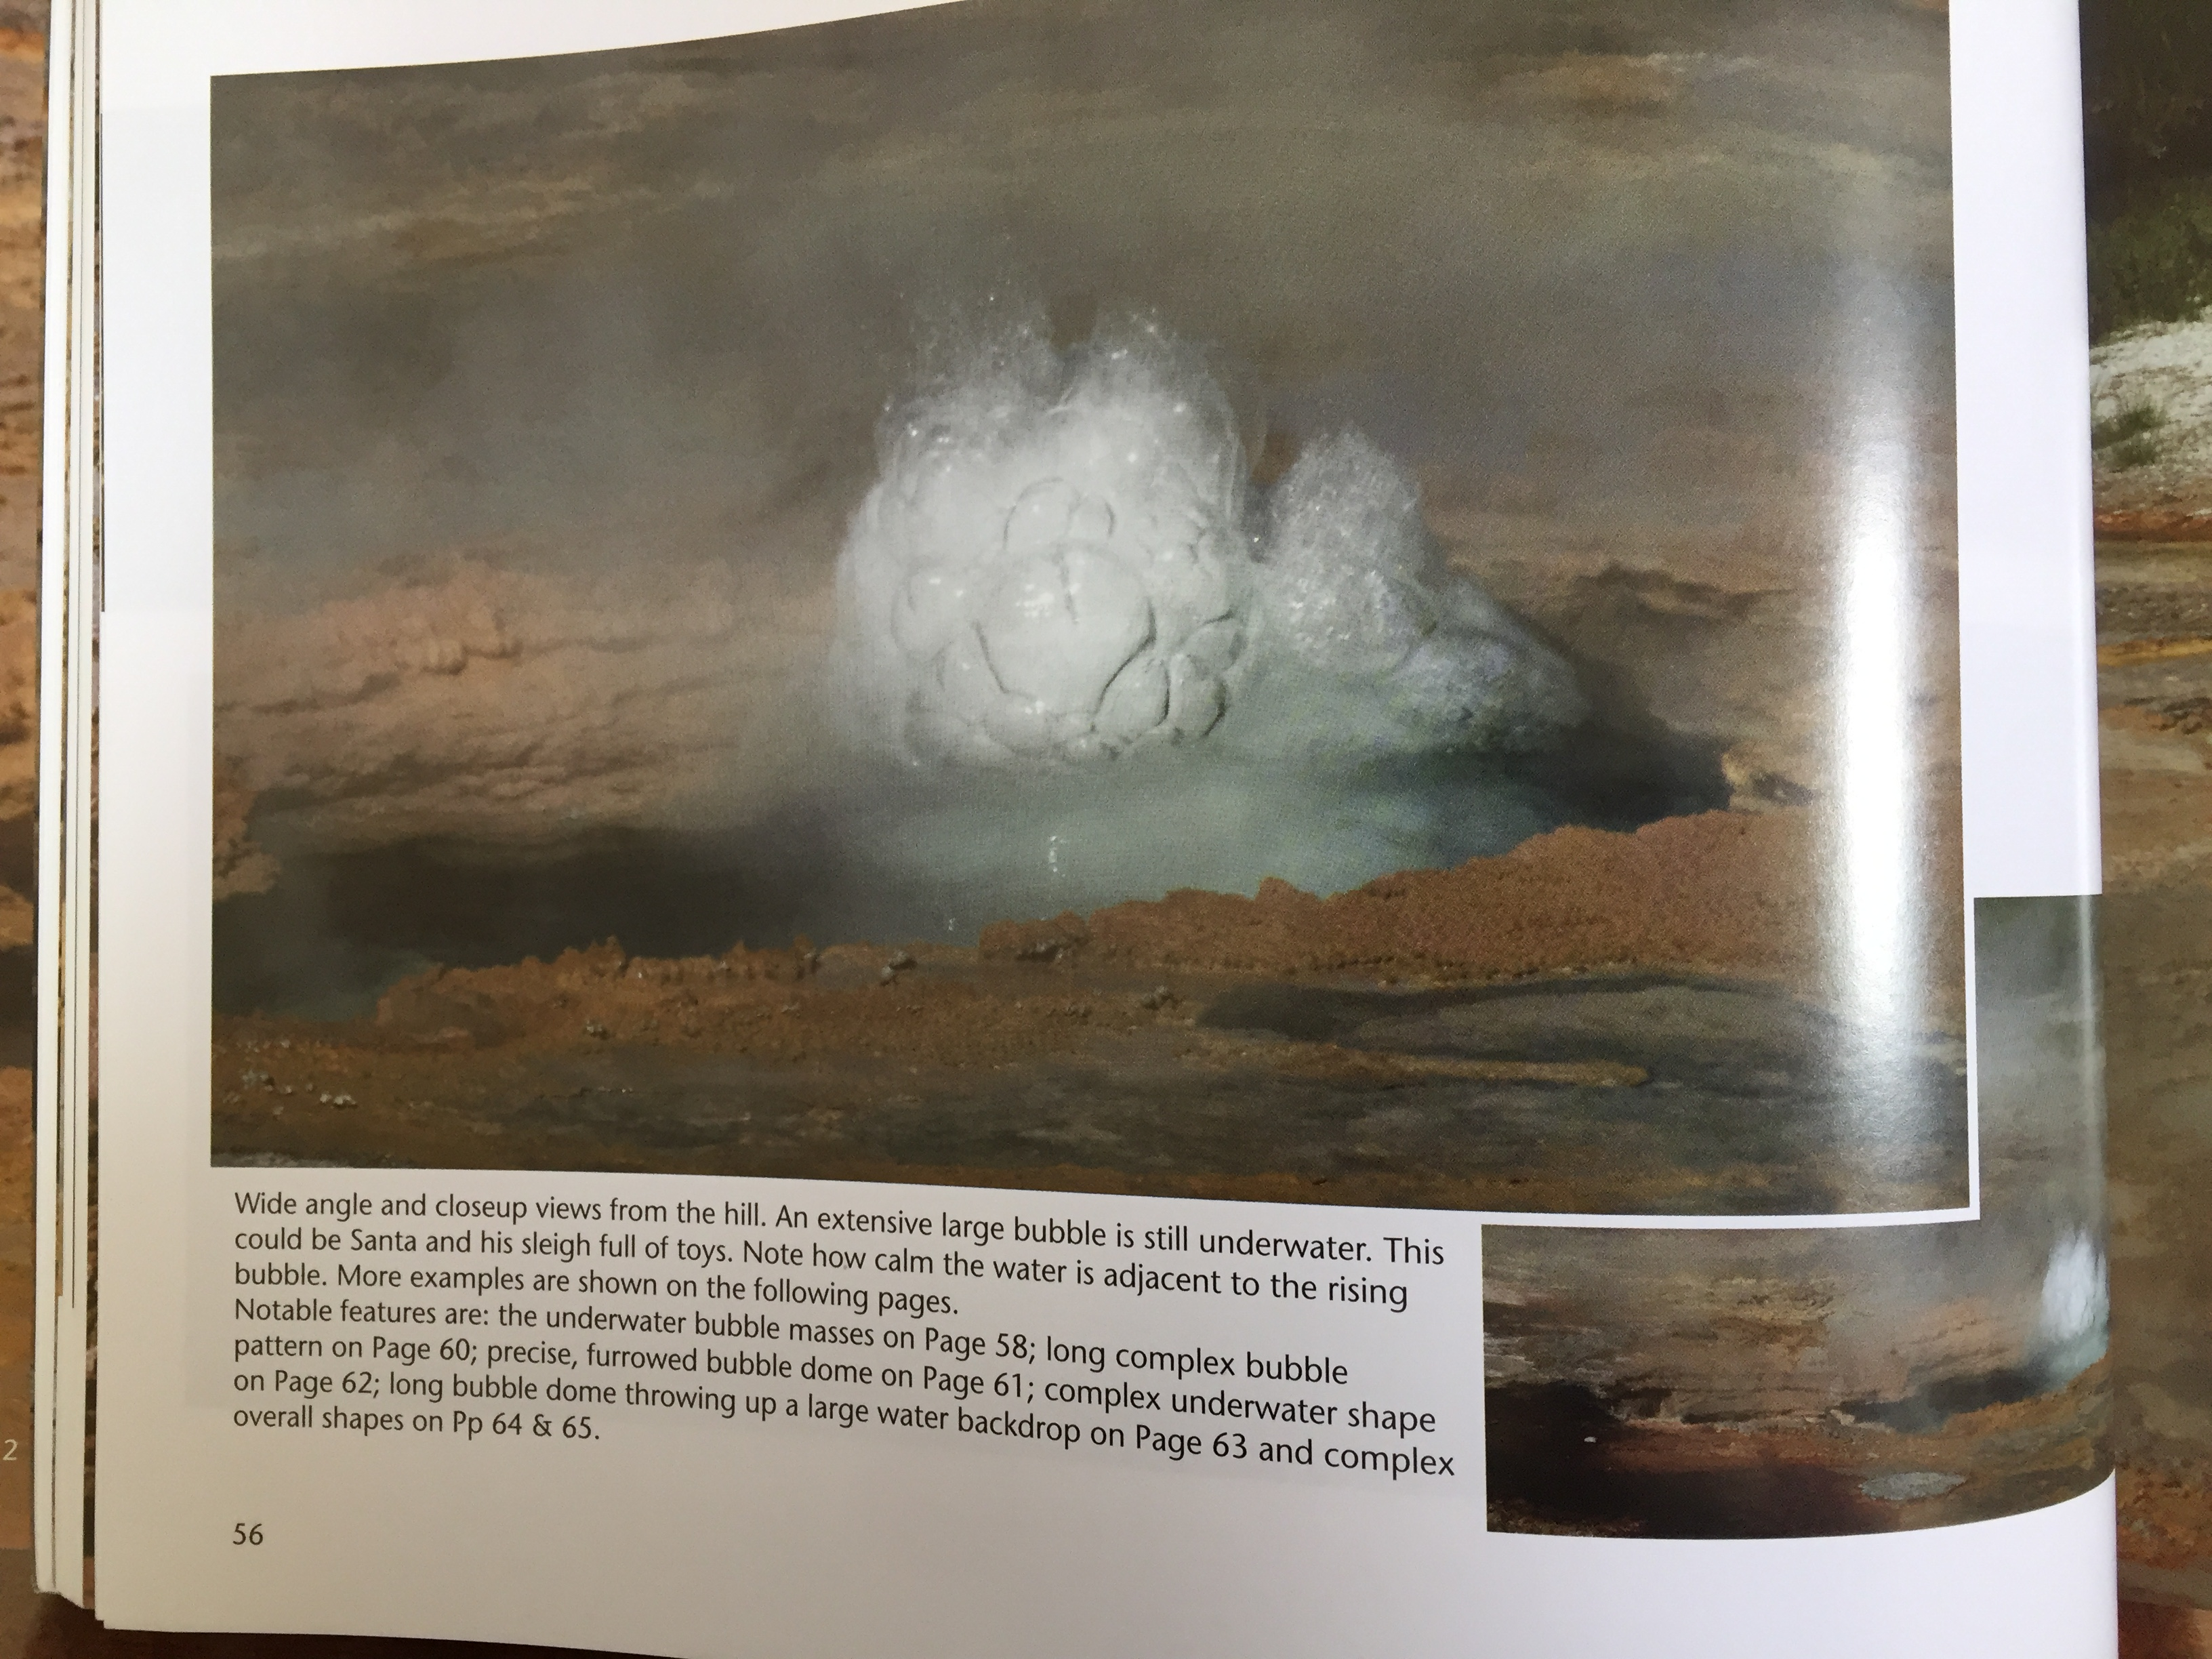 Image for Unusual Geysers: Hidden Bubble Patterns in Geysers of Yellowstone & Iceland